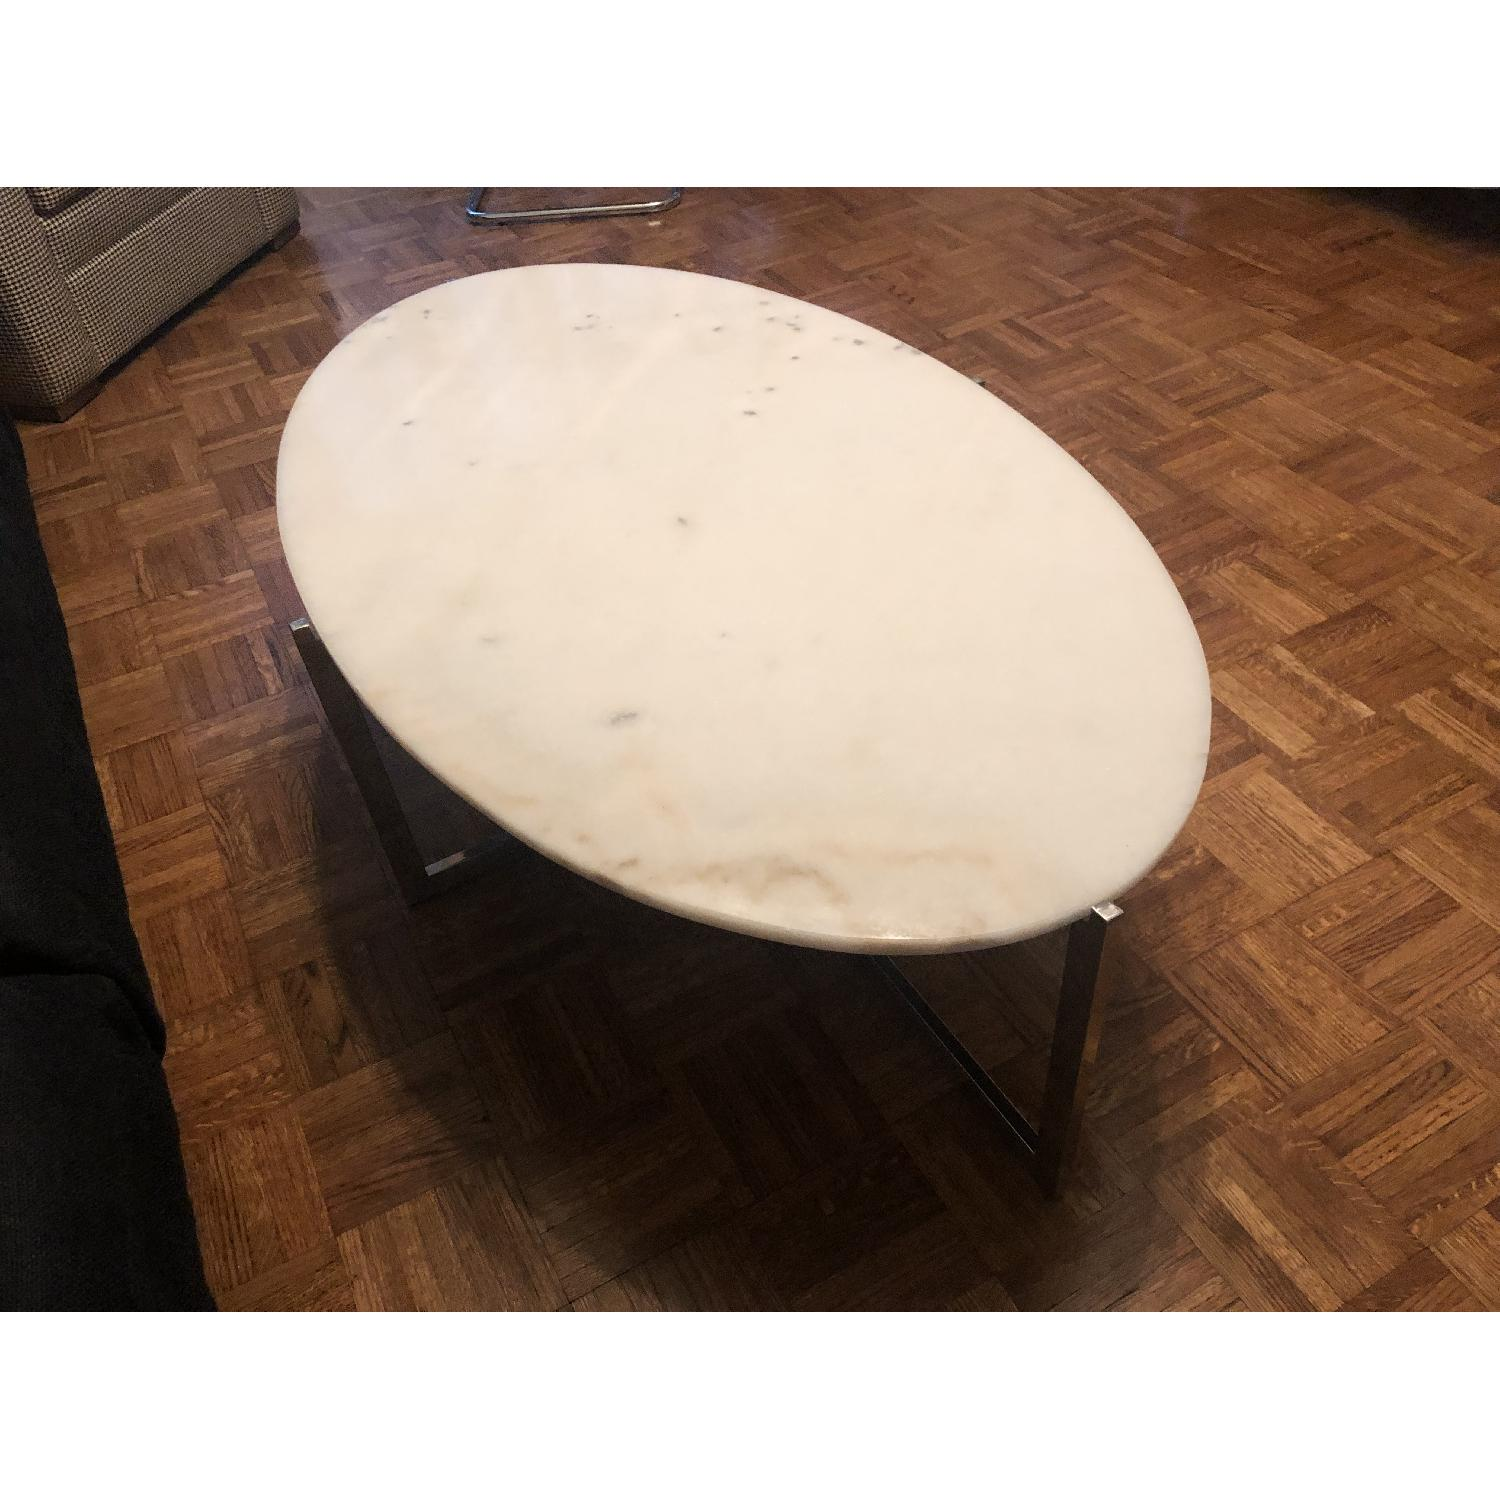 France and Son Oval Cantilevered Marble Coffee Table - image-3